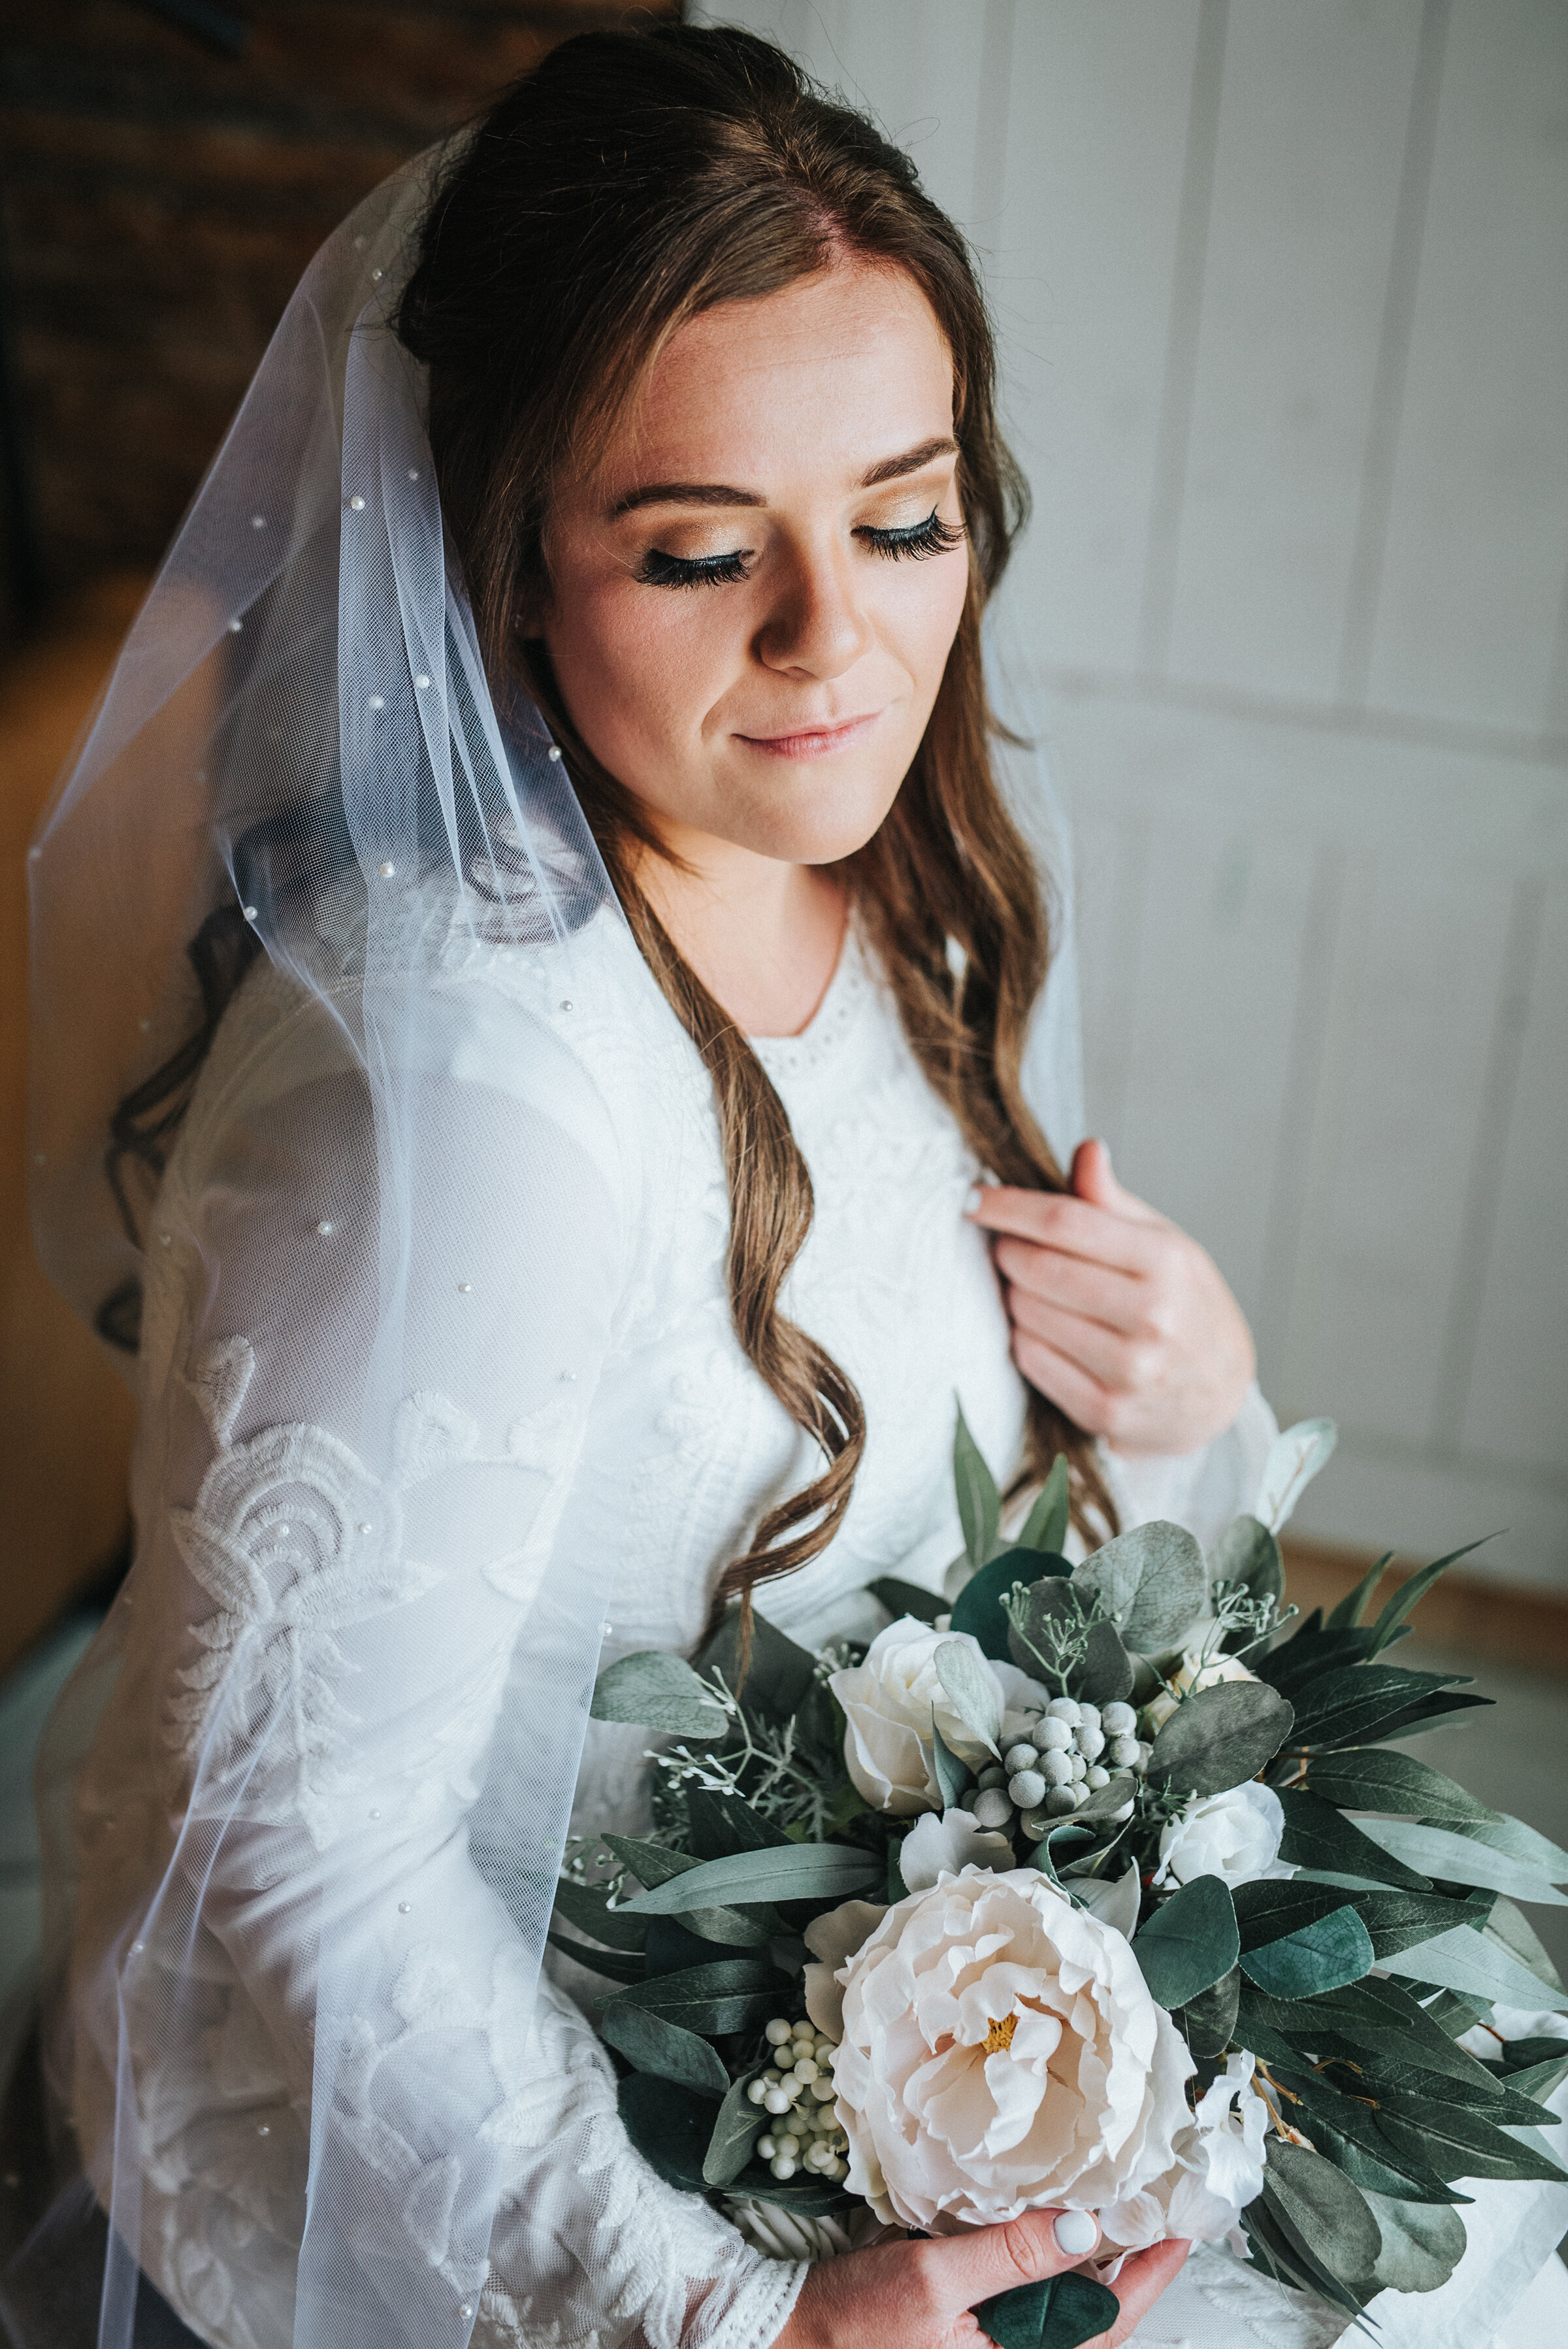 The bride absolutely glowing after the final touches were applied on her wedding day. The curls in her hair and the makeup applied were stunning and her veil was just the right accent piece. Wedding day photoshoot in Ephraim Utah photography wedding outdoor location western inspired rustic Airbnb photo aesthetic #ephraimutah #utahphotography #weddingdayphotography #gettingmarried #rusticwedding #utahwedding #westernstyle #weddingphotoshoot